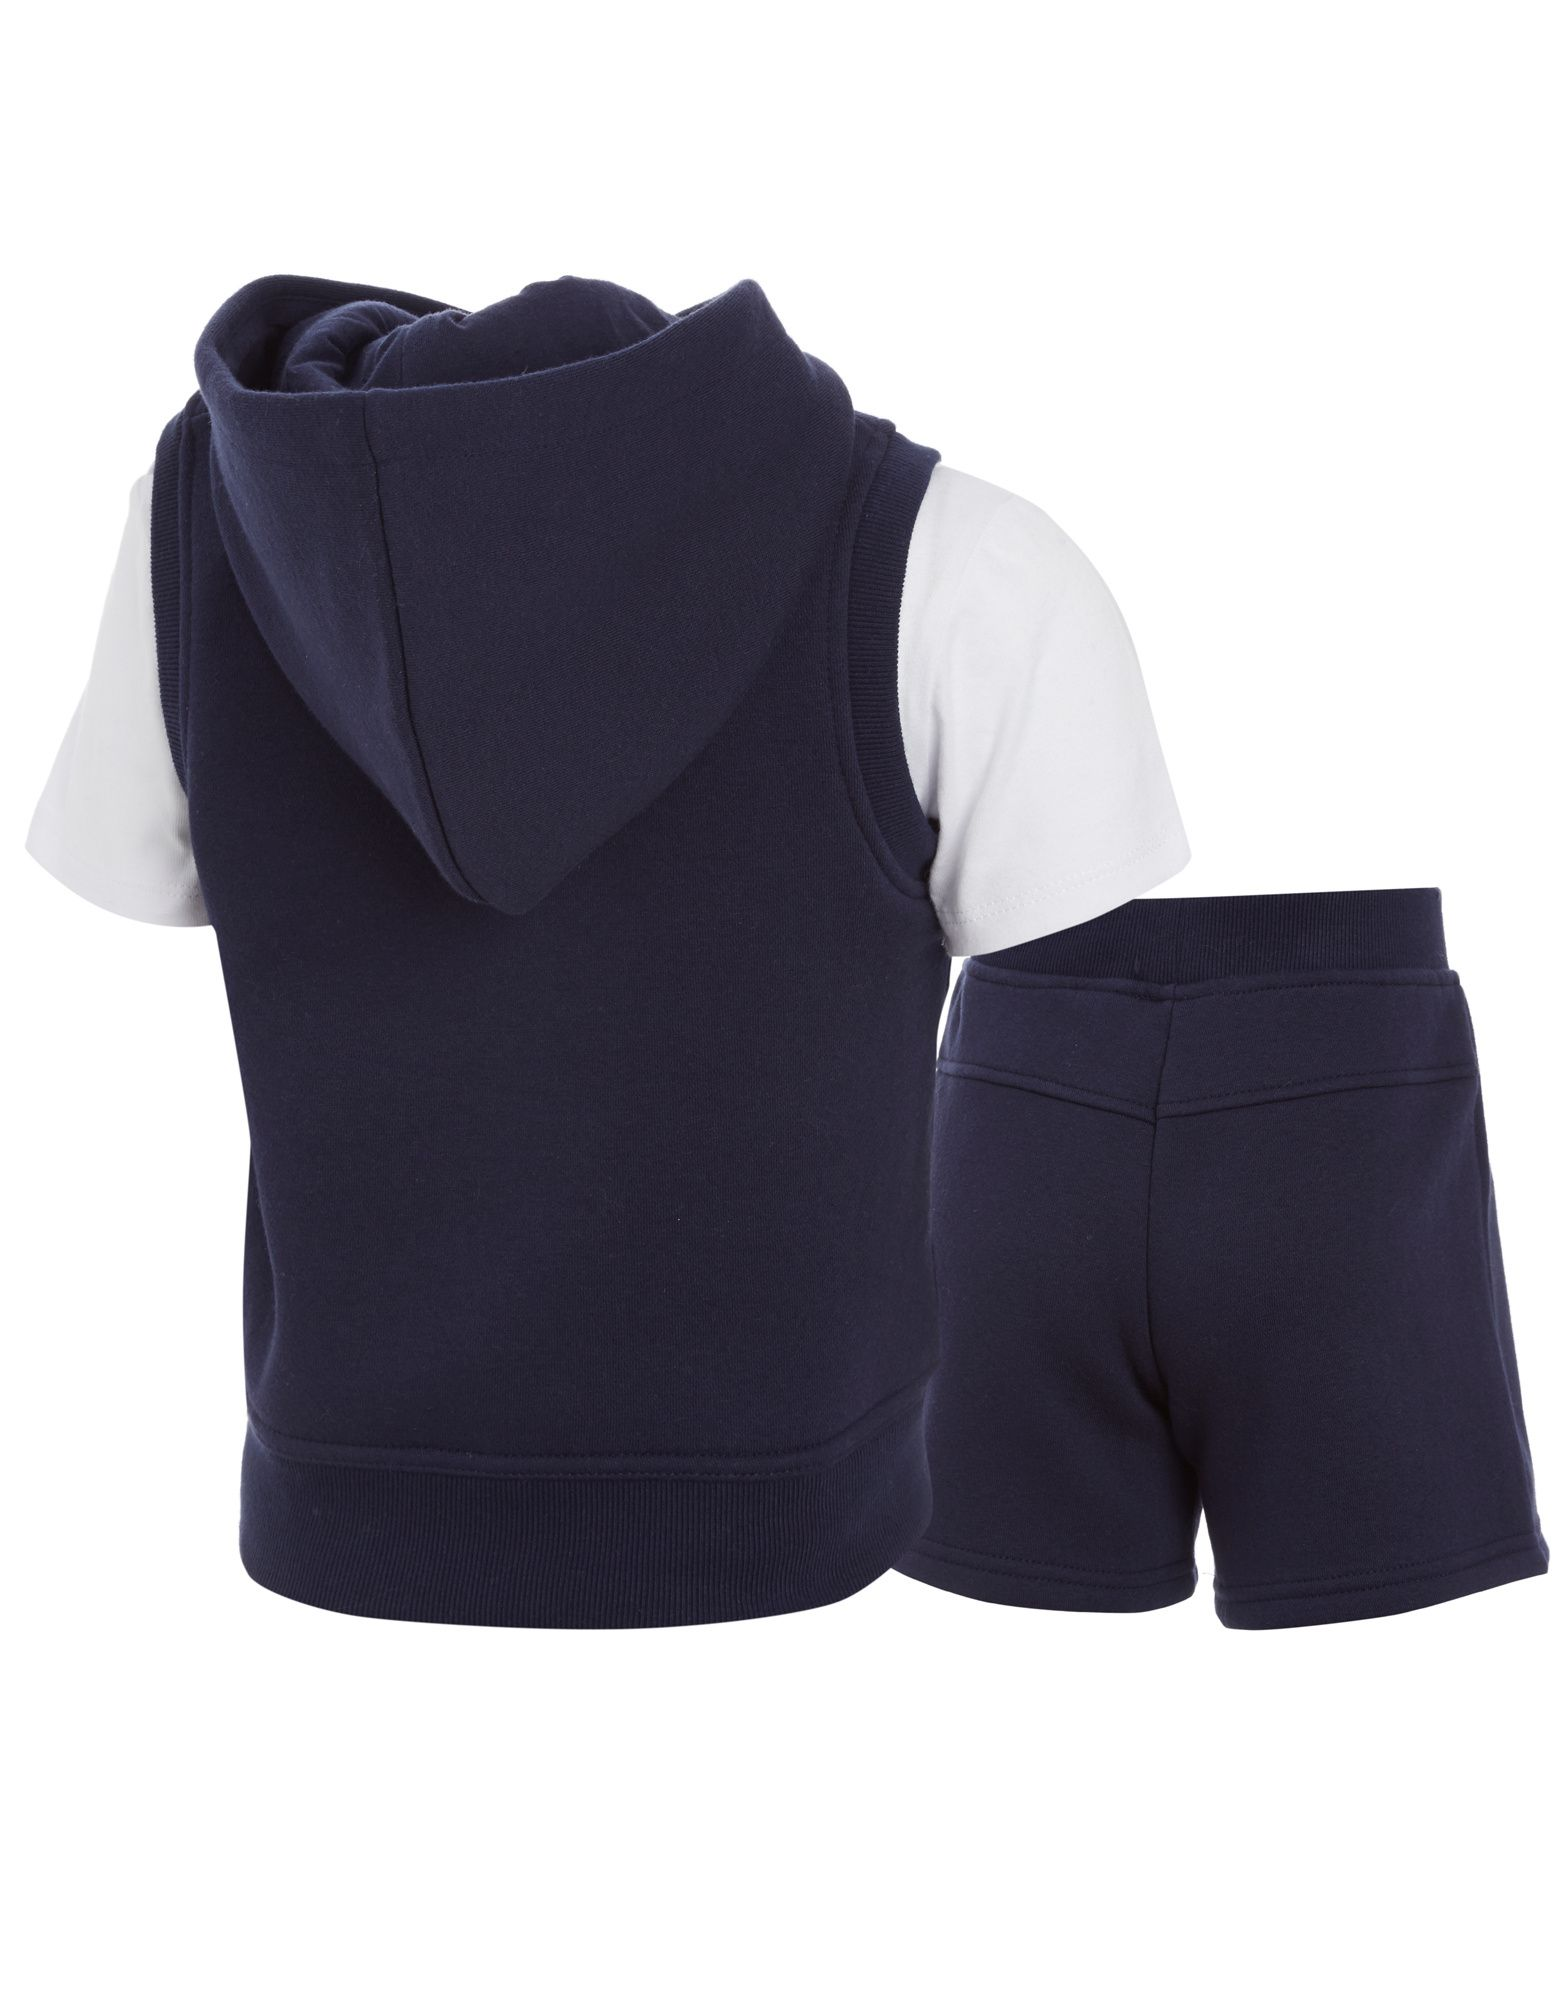 Nickelson Impact 3 Piece Set Infants